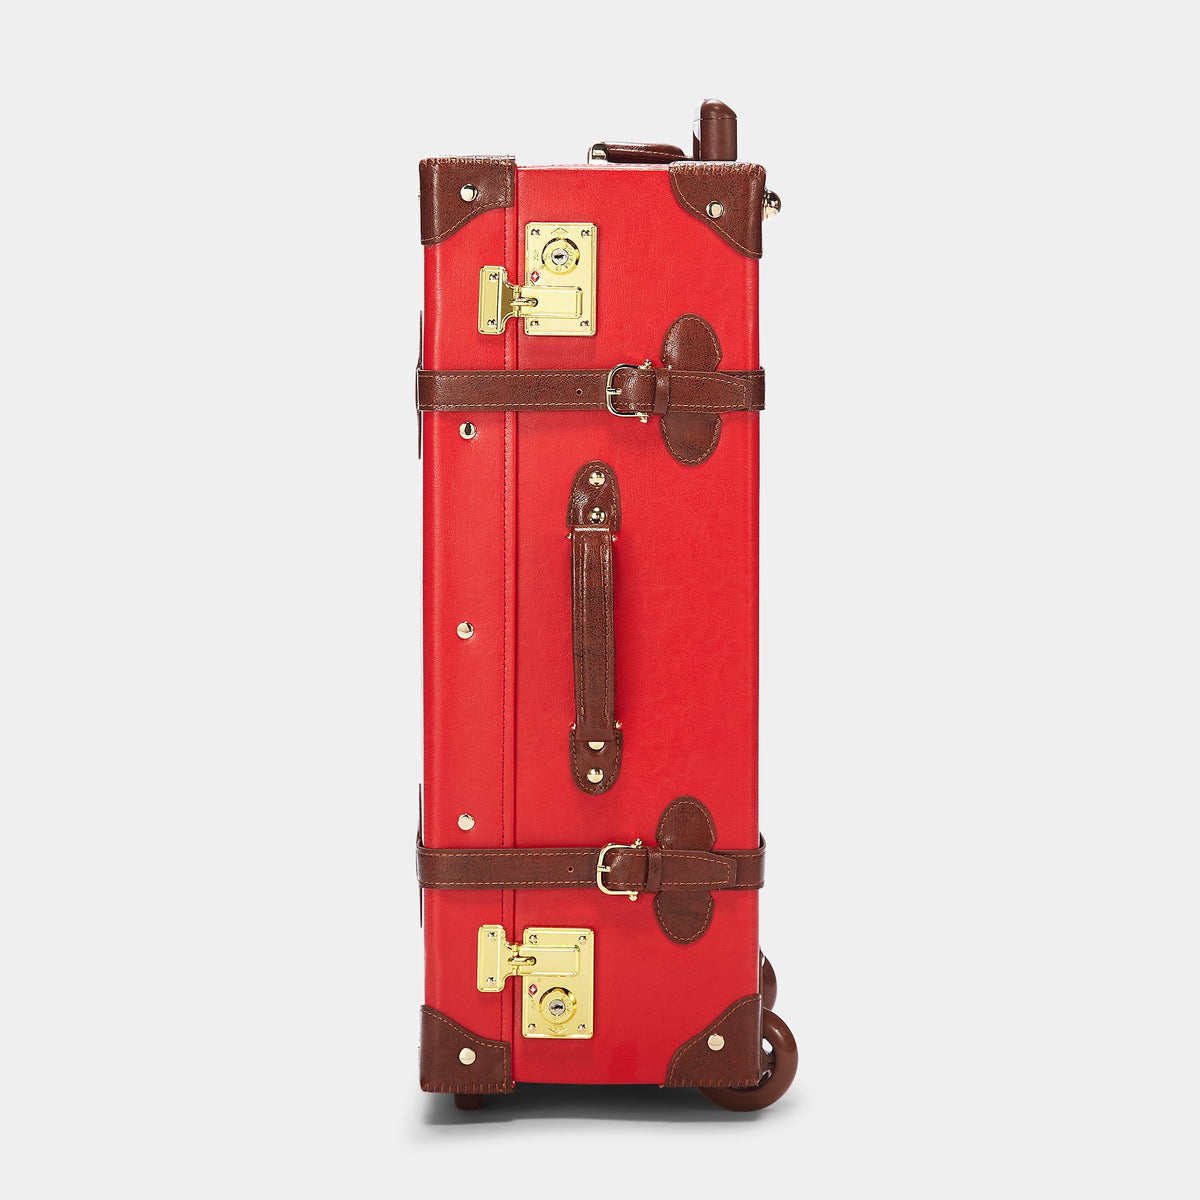 The Entrepreneur Stowaway in Red - Vintage-Inspired Vegan Luggage - Exterior Side